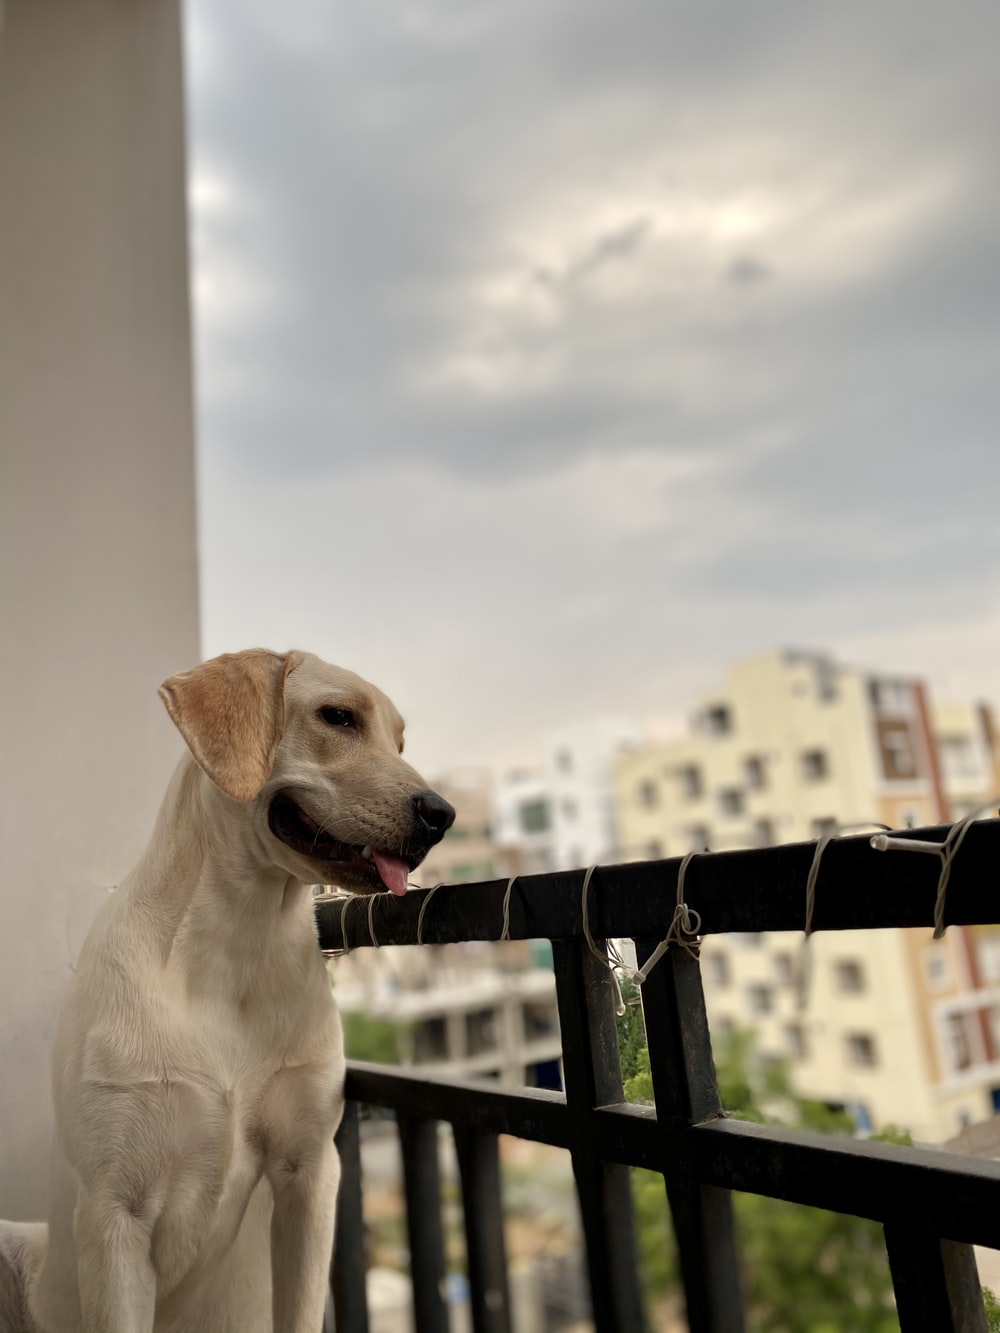 yellow labrador retriever sitting on wooden fence during daytime